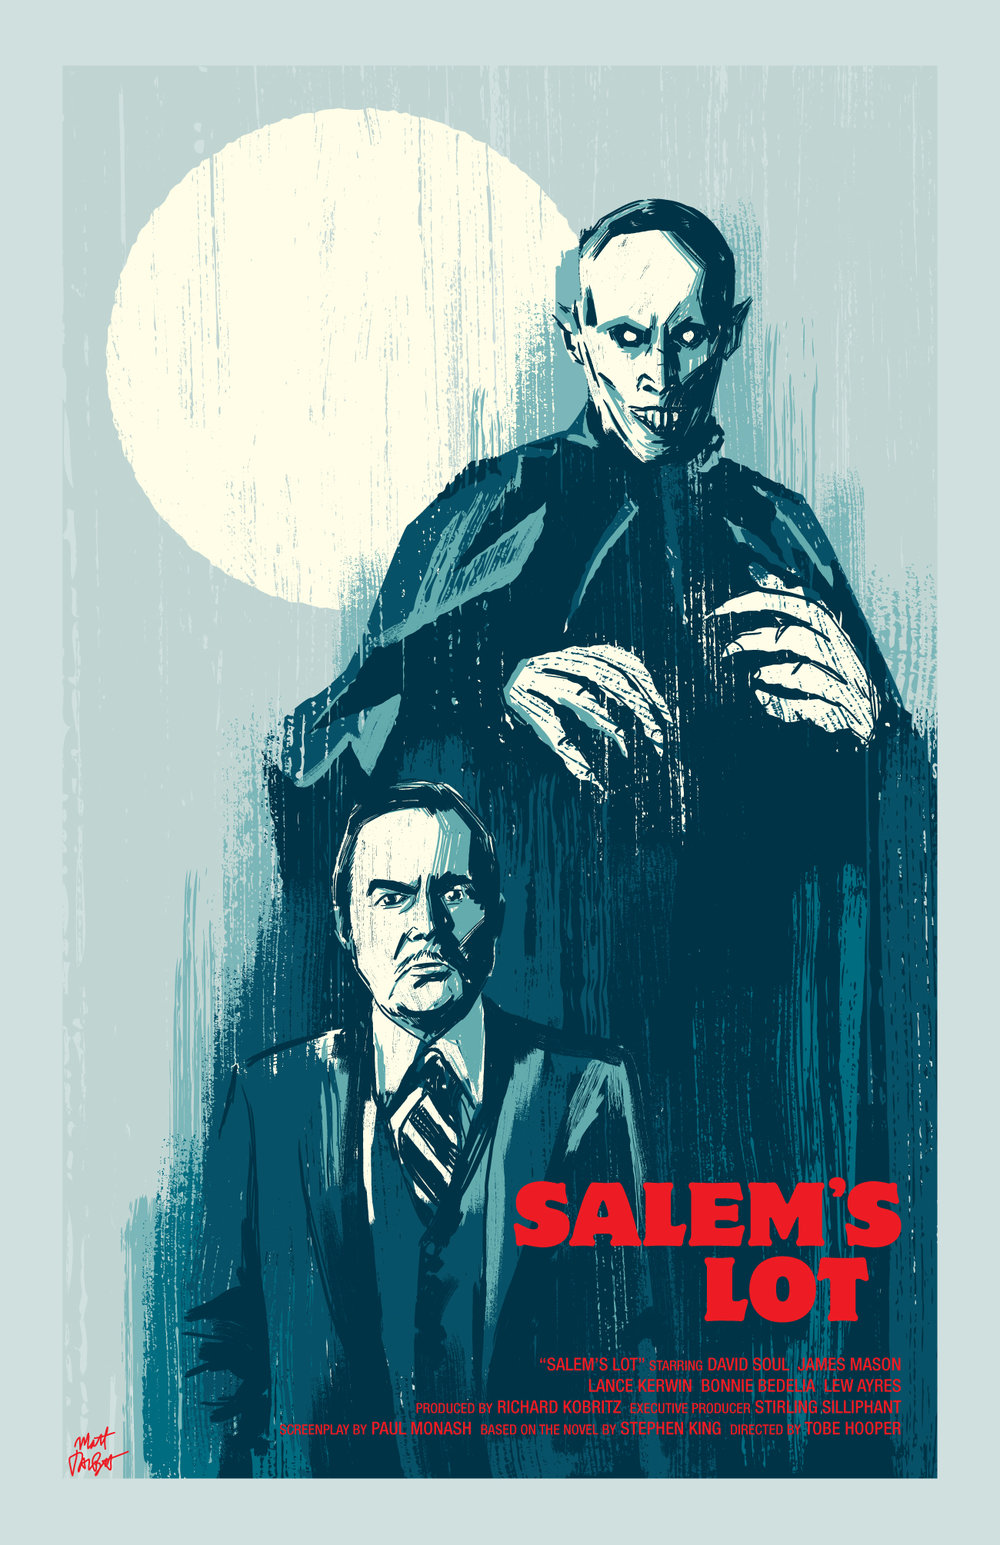 Salem's Lot poster by Matt Talbot